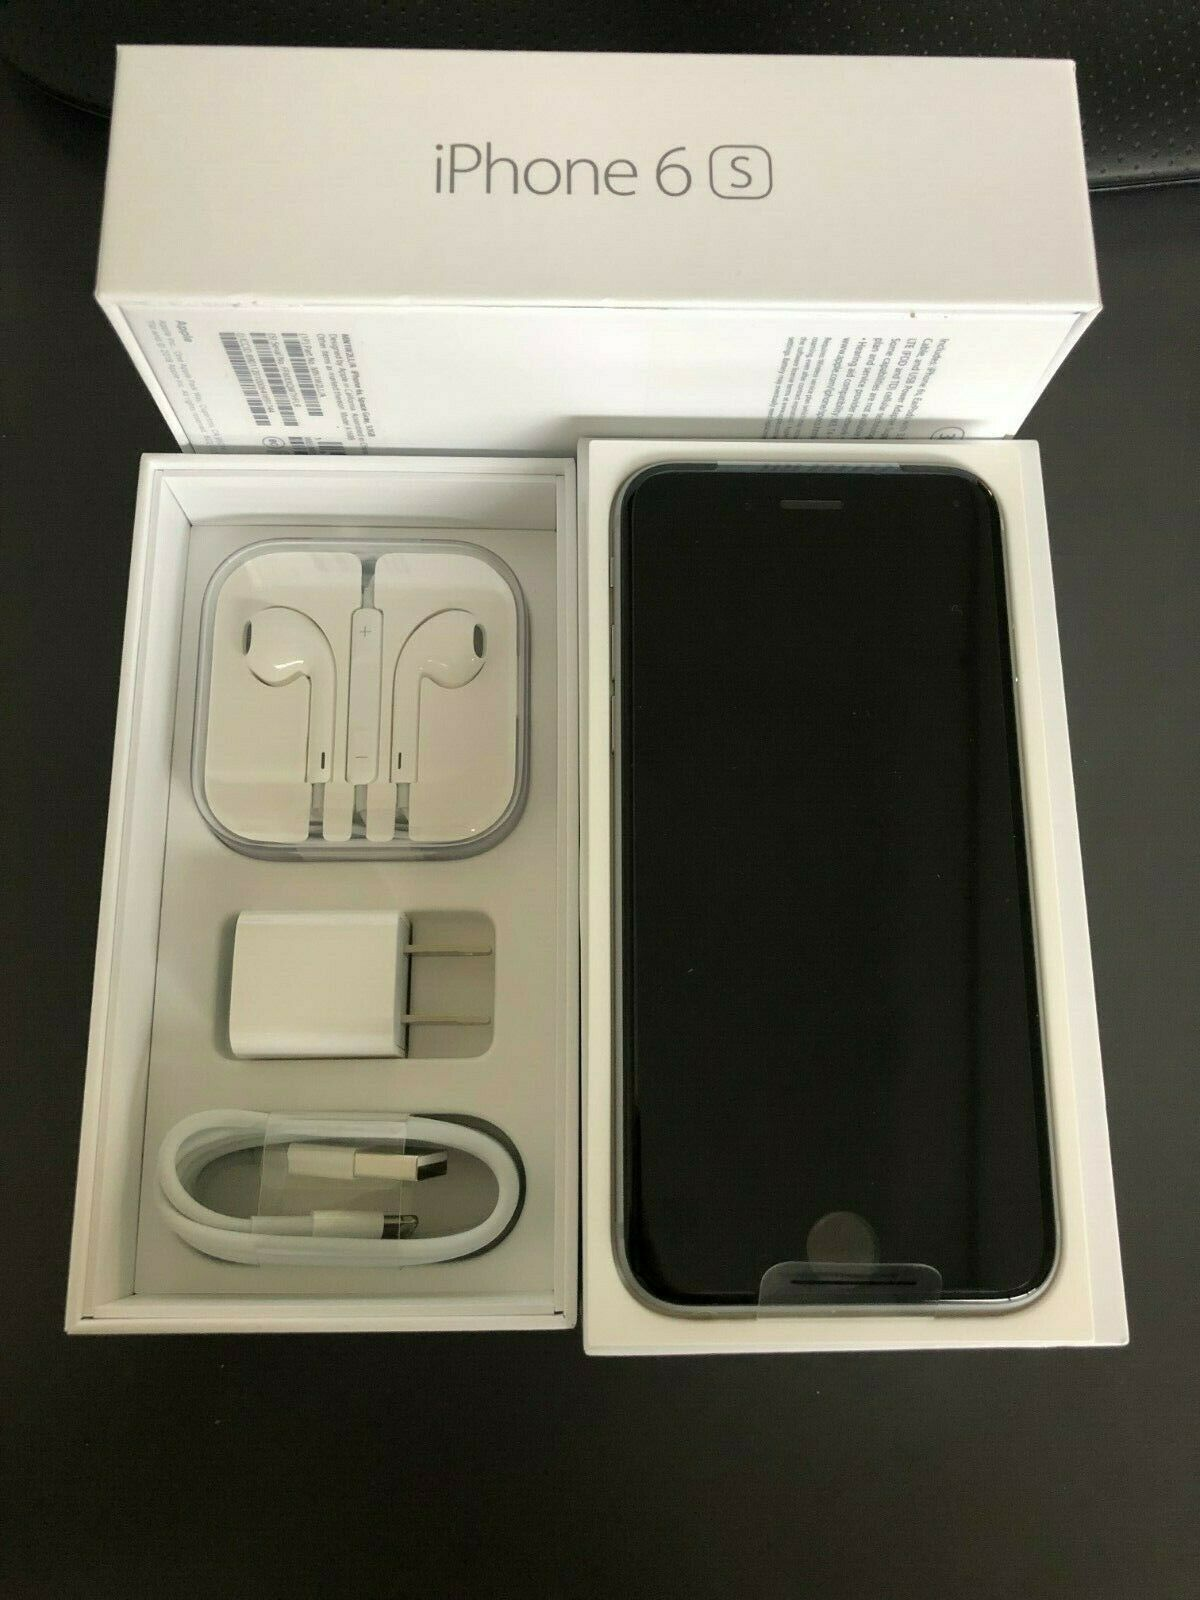 New Apple iPhone 6s - 32GB - Space Gray (Boost Mobile) A1688 (CDMA + GSM)